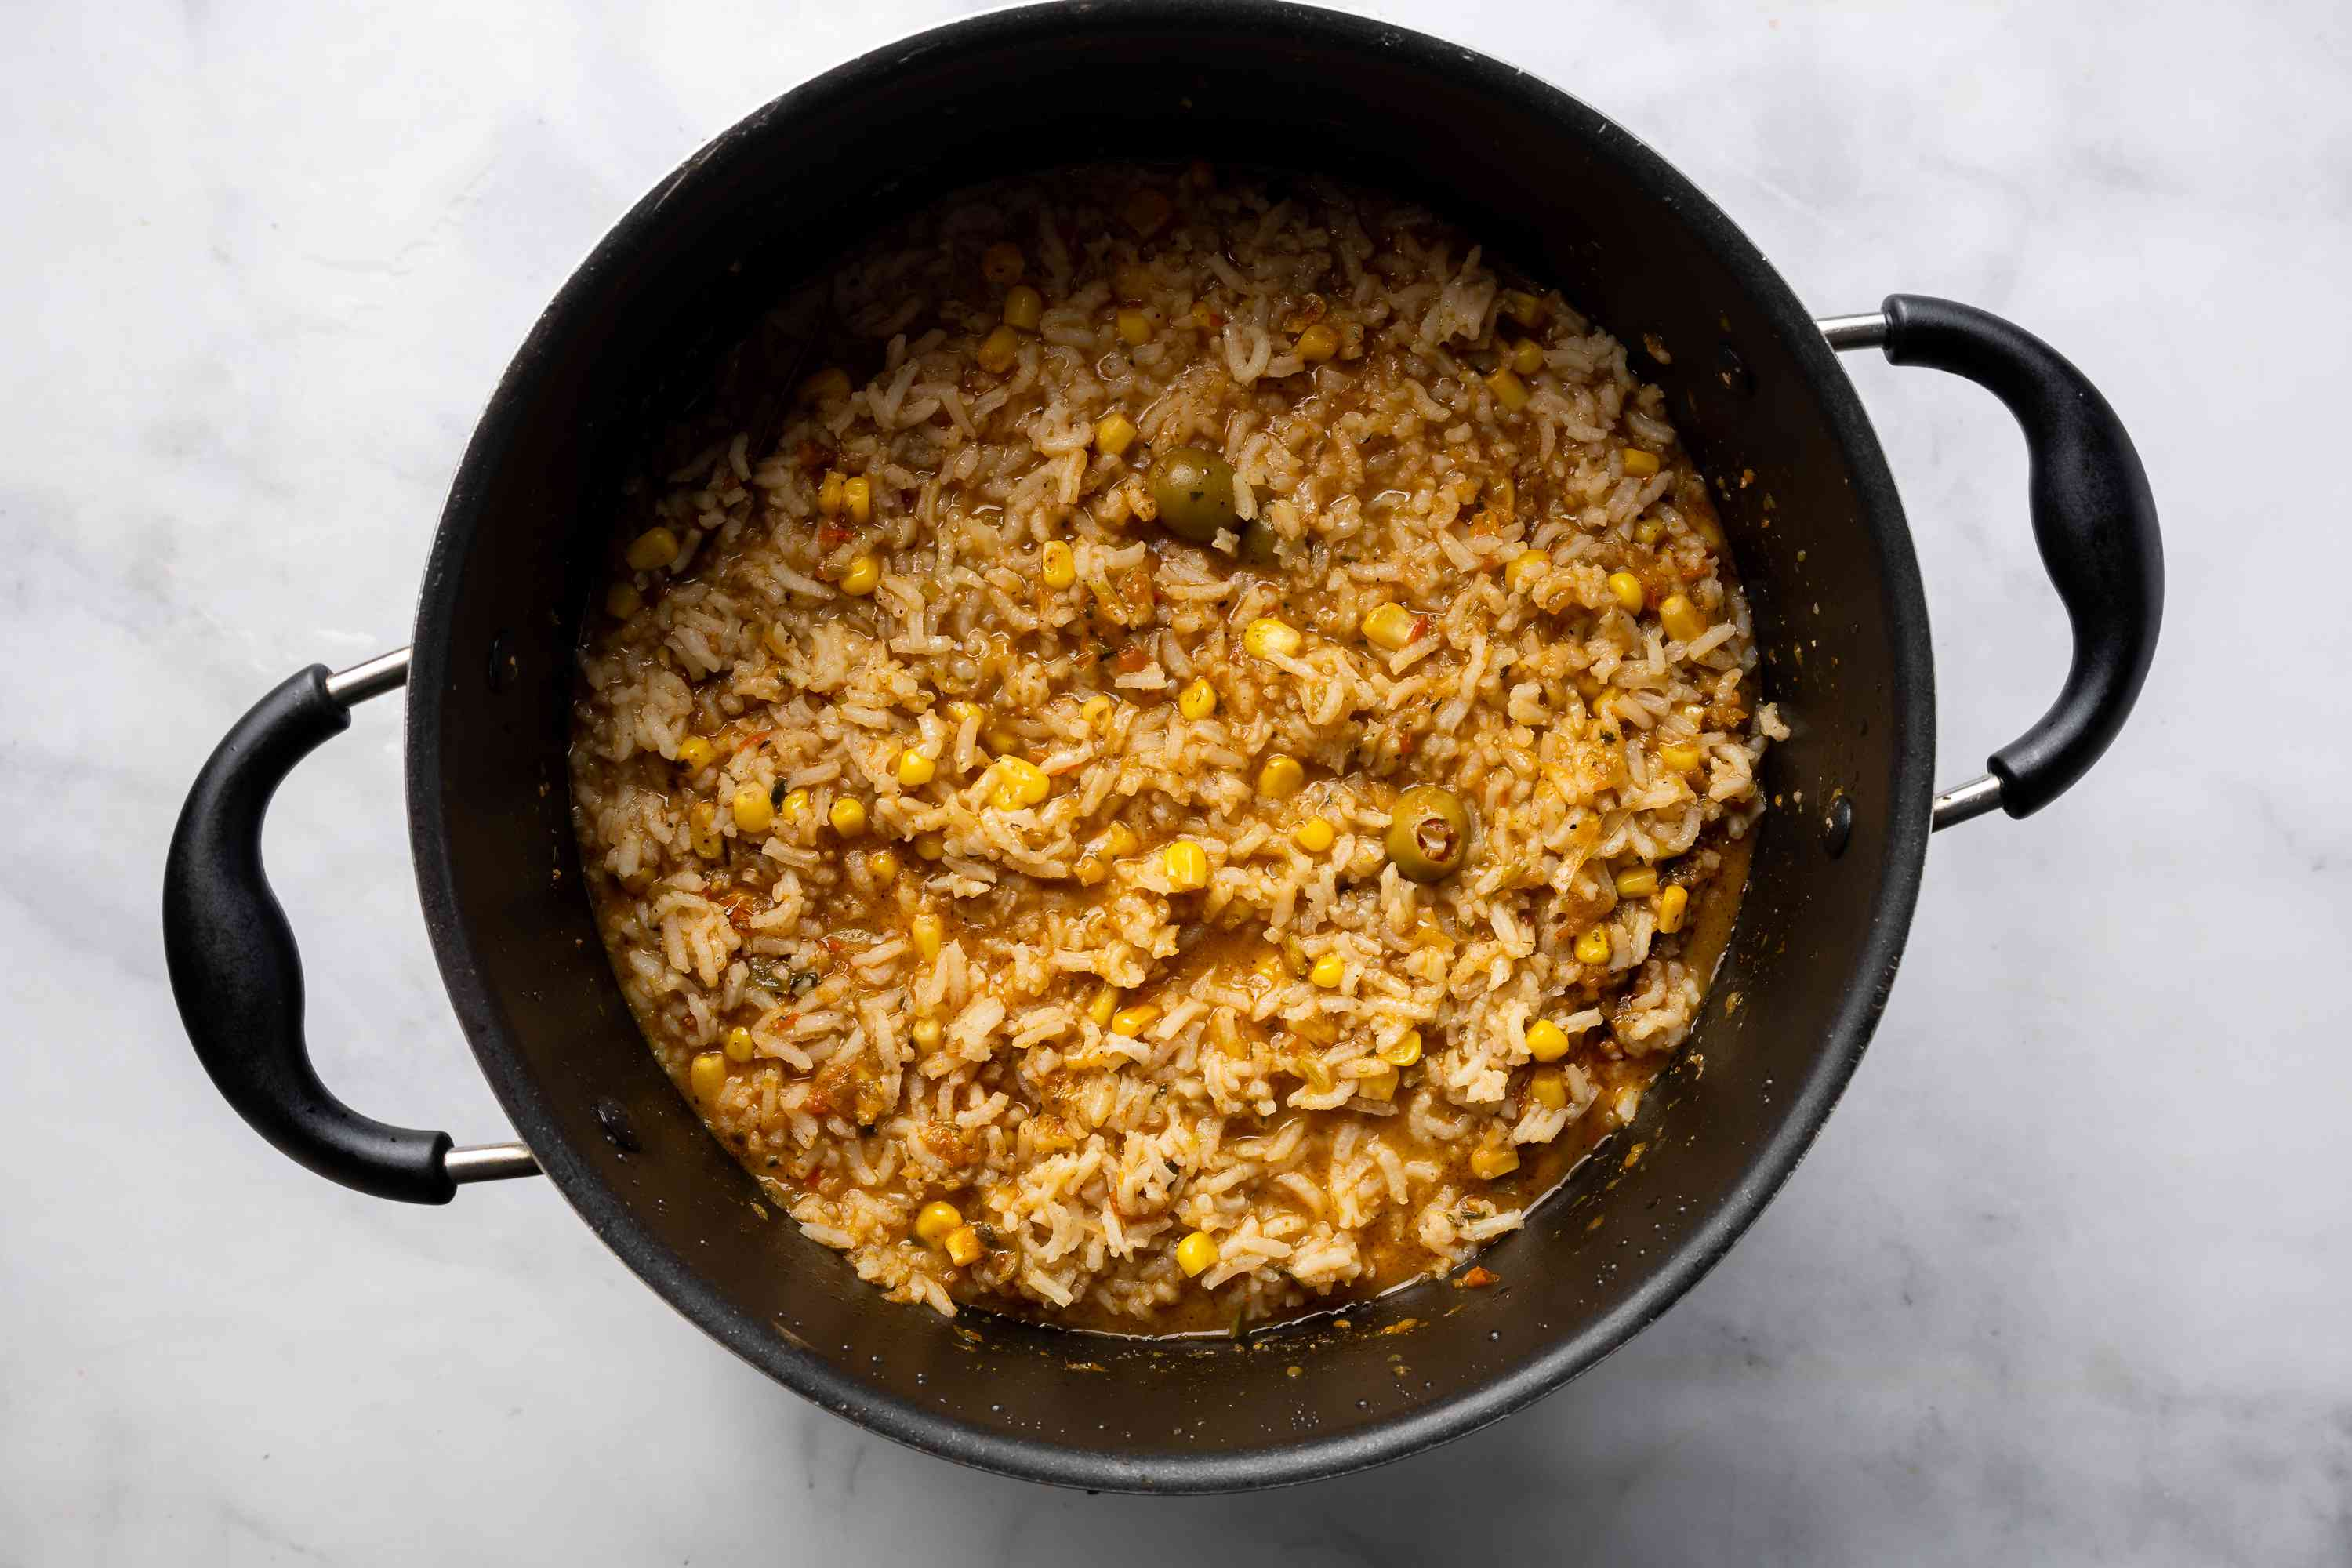 cooked rice in pot